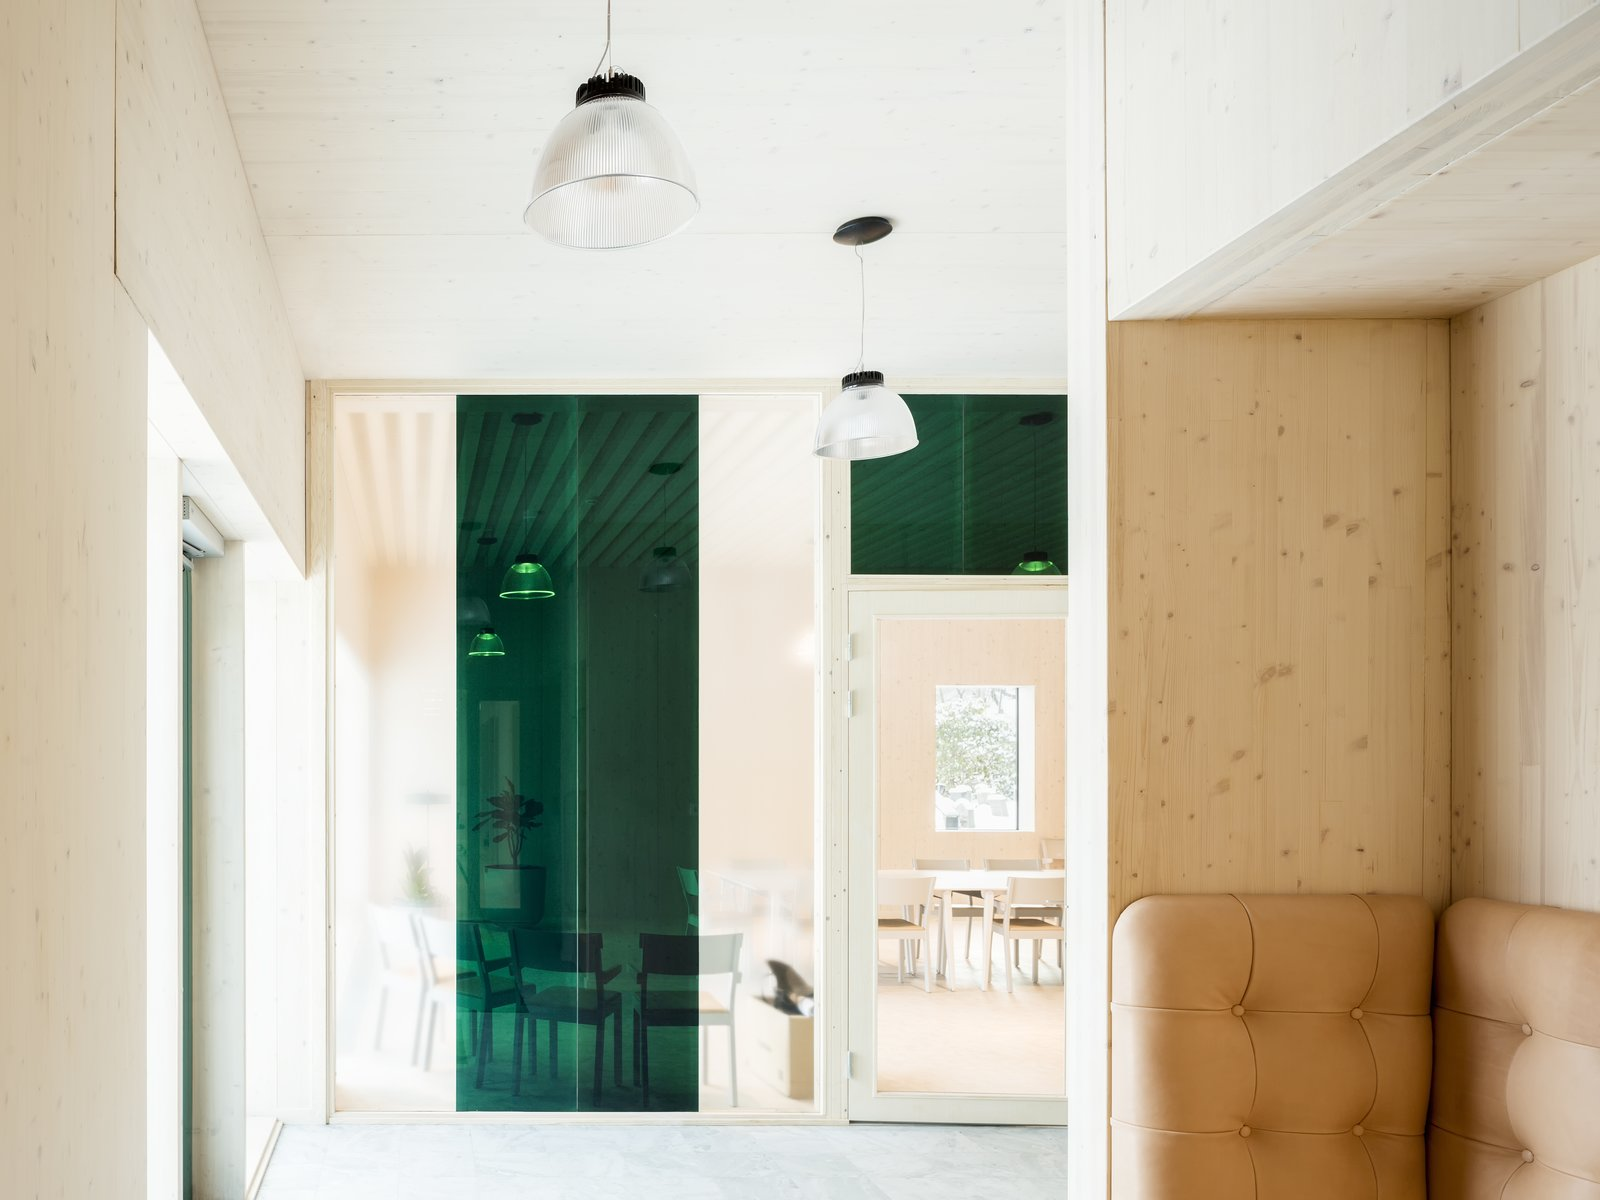 Office and Concrete Floor The interior design is characterized by restraint. Wood complements leather and concrete for a modern, natural-looking building that blend together with its lush surroundings.  Best Photos from Architect Gert Wingårdh Builds a Dazzling Emerald Office in a Swedish Cemetery